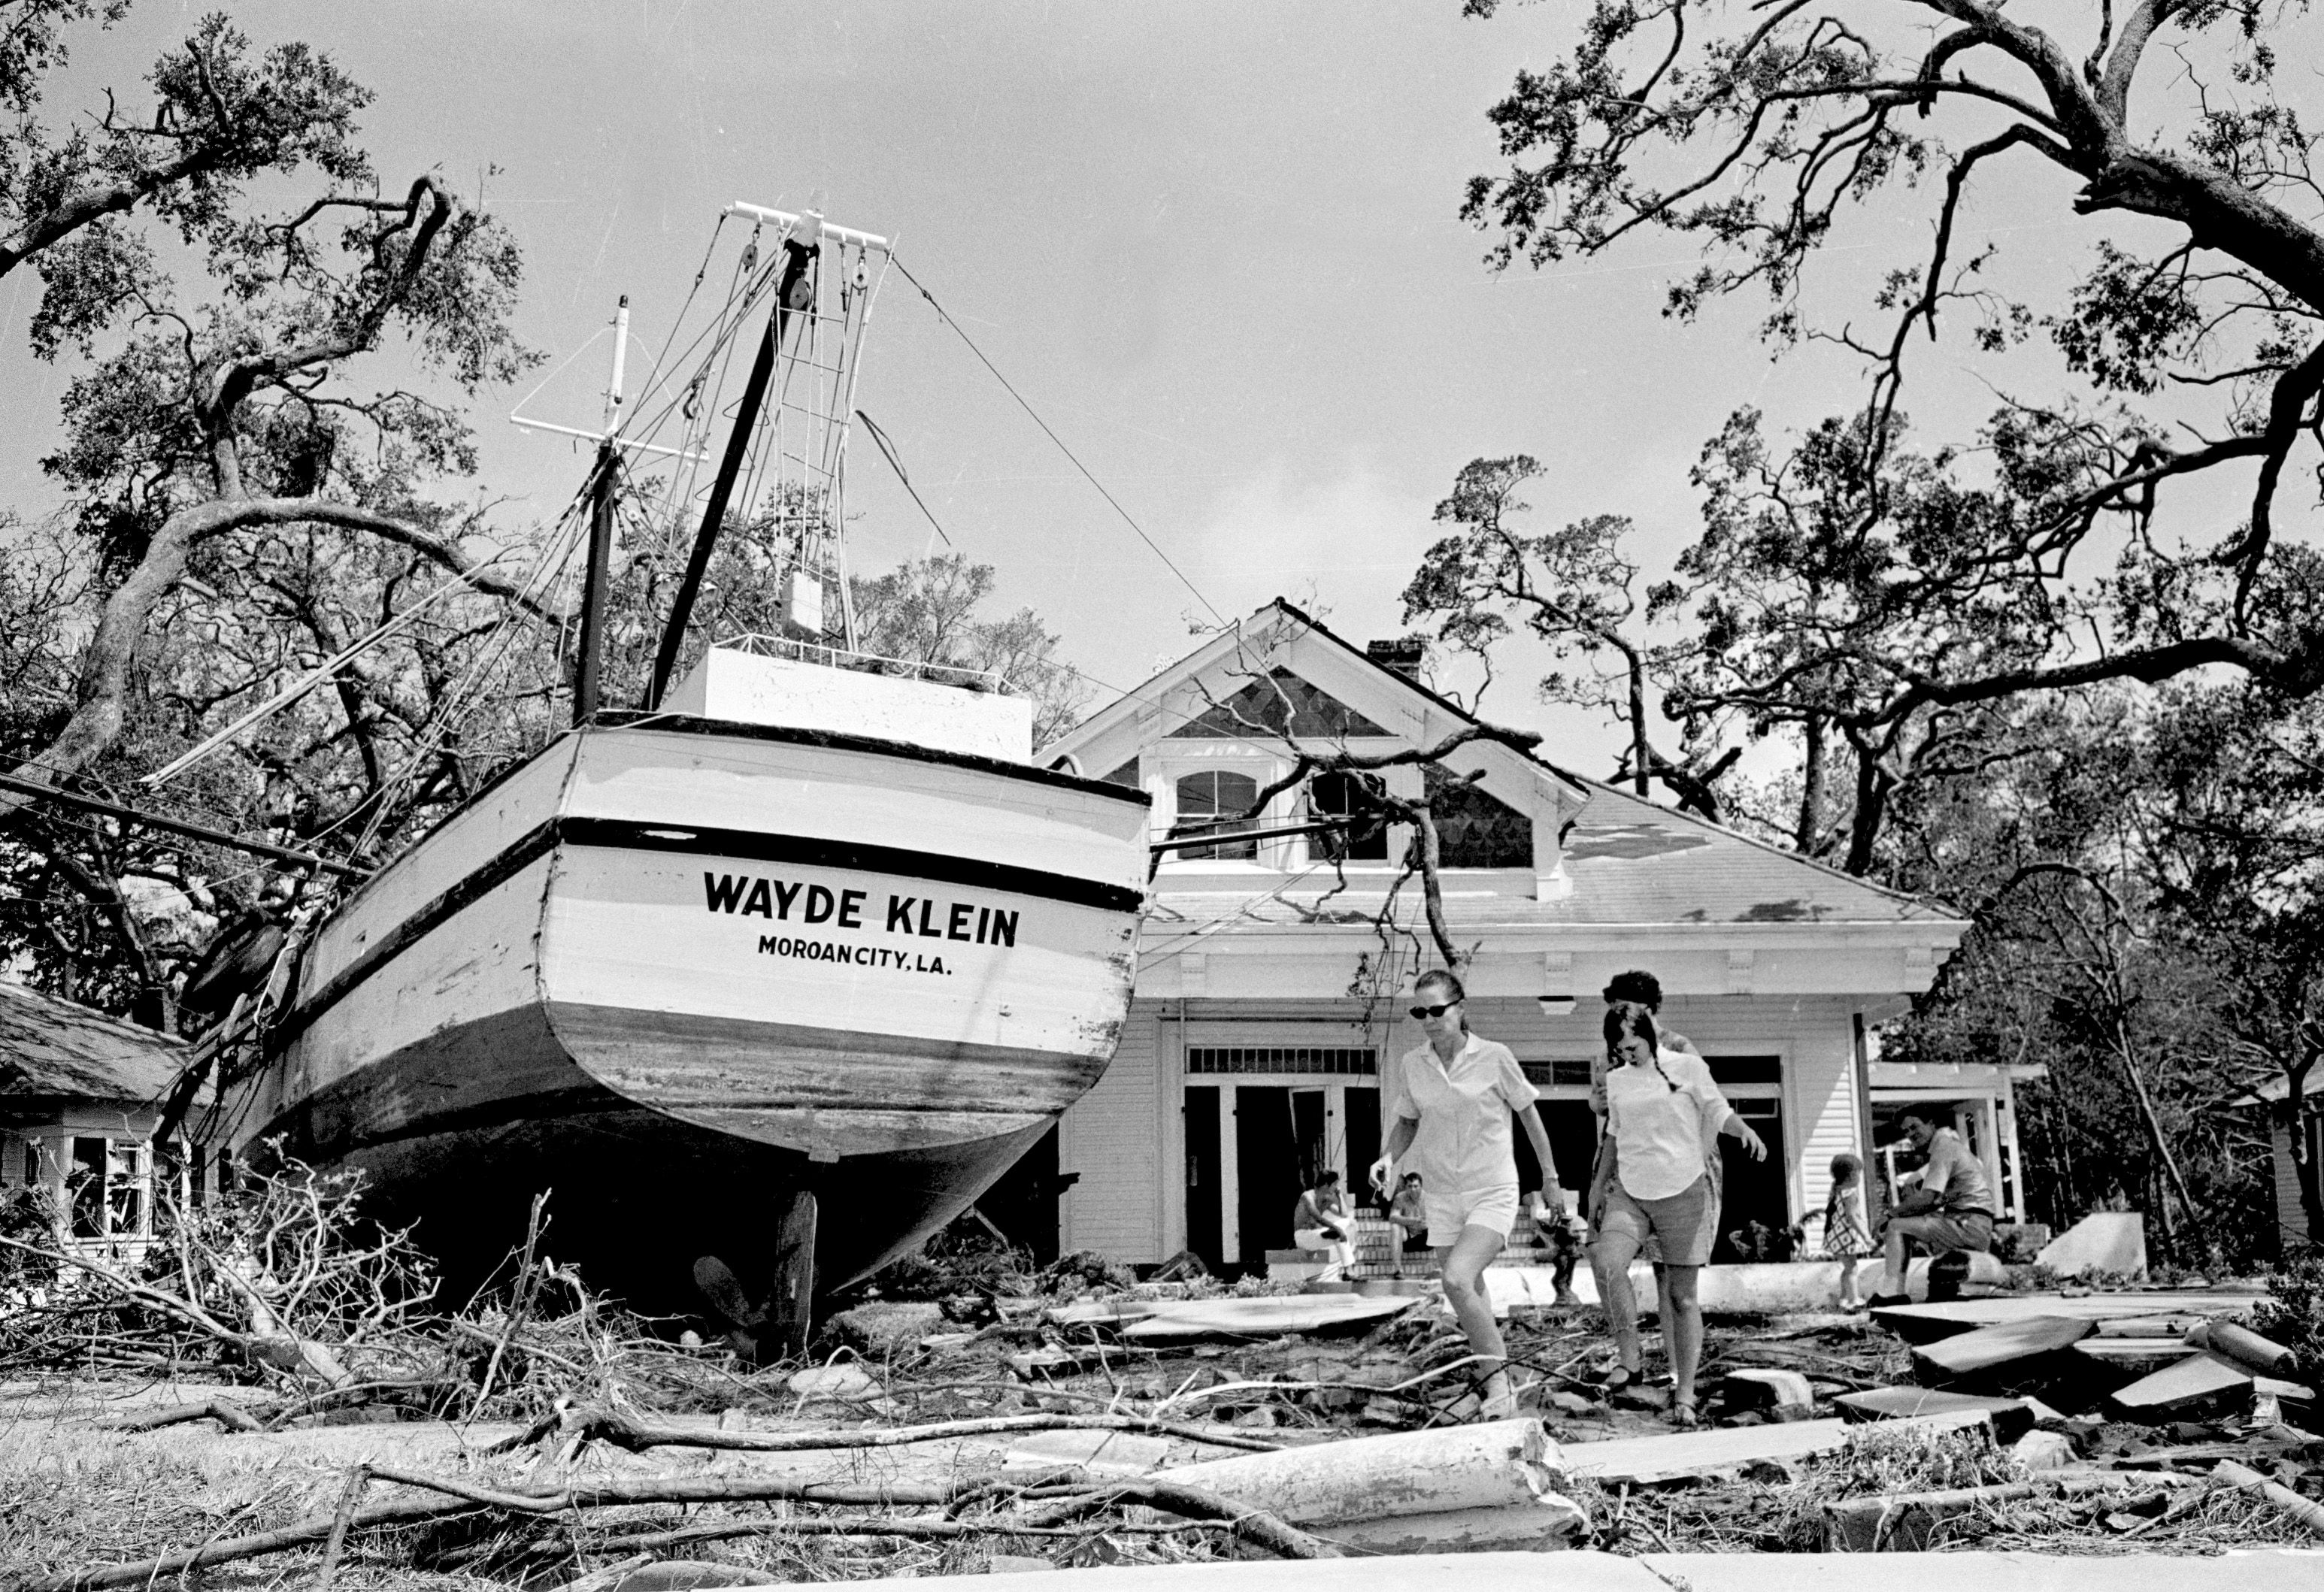 30 Deadliest Hurricanes In American History Hurricane Camille Hurricane Mississippi